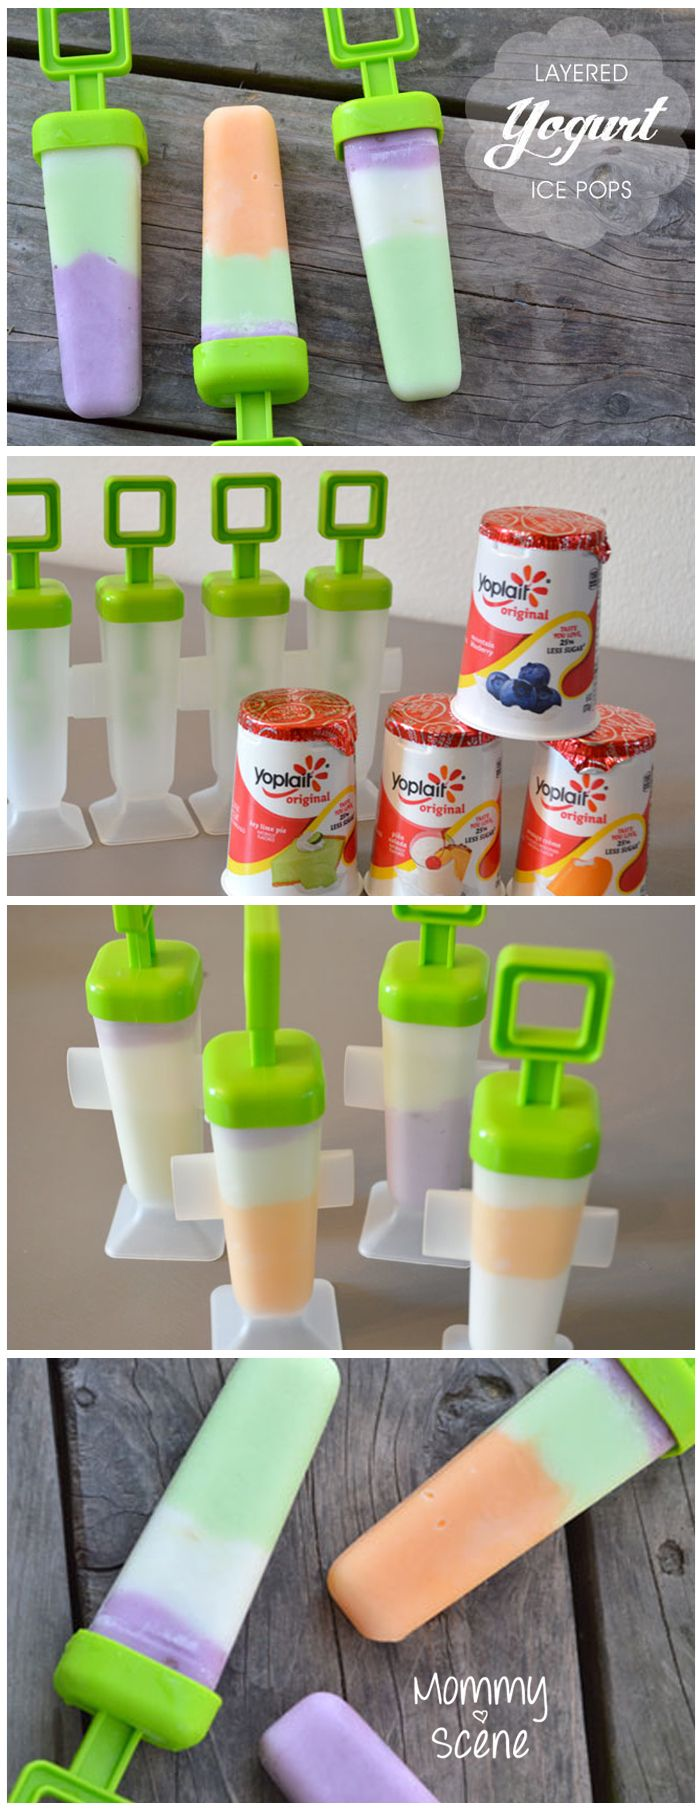 Yogurt popsicles are easy to make and fairly healthy too! All you need is several flavors of yogurt to layer inside a popsicle mold and freeze.